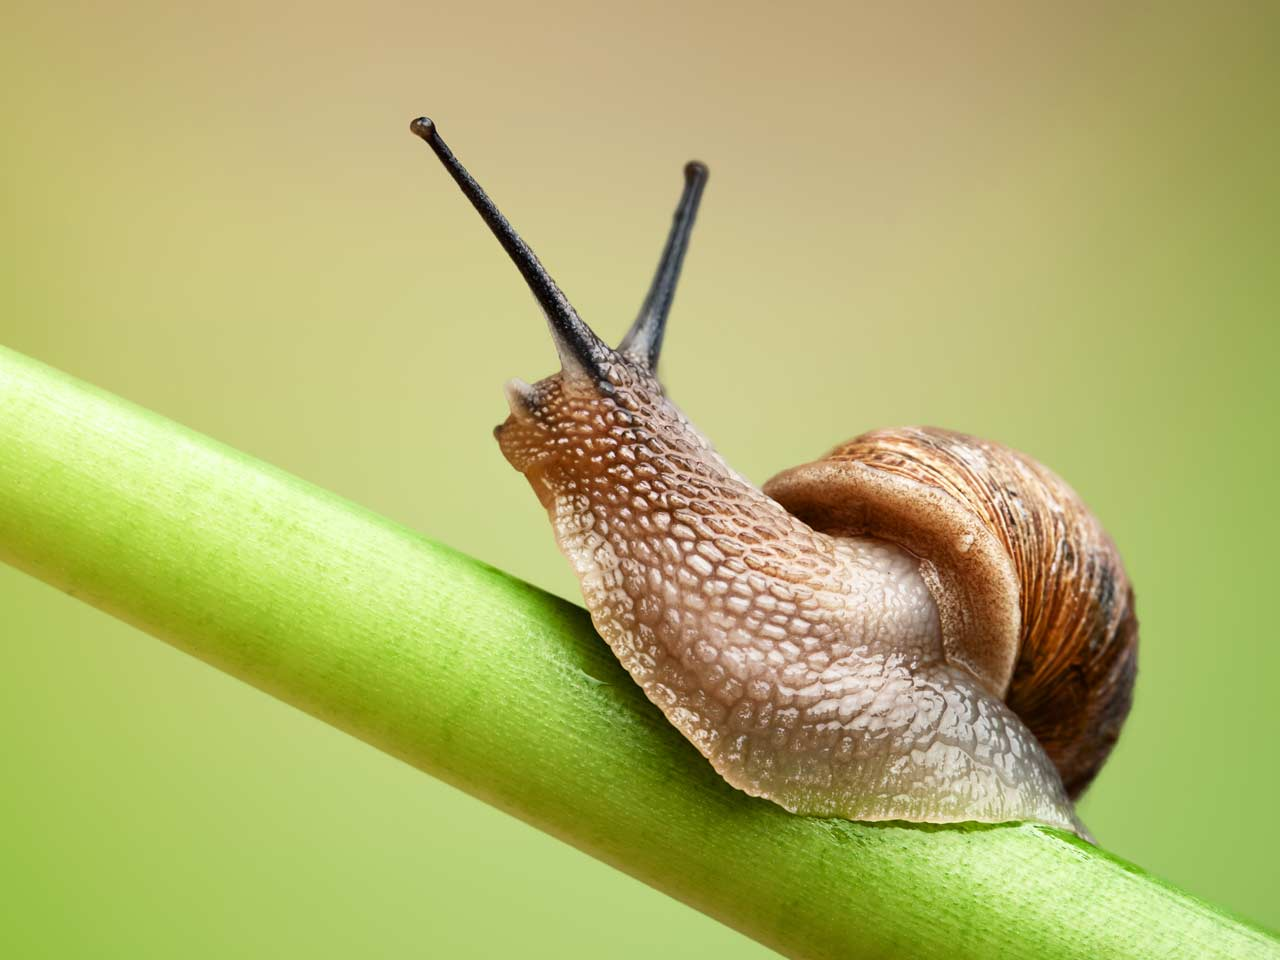 Snails wallpapers, Humor, HQ Snails pictures